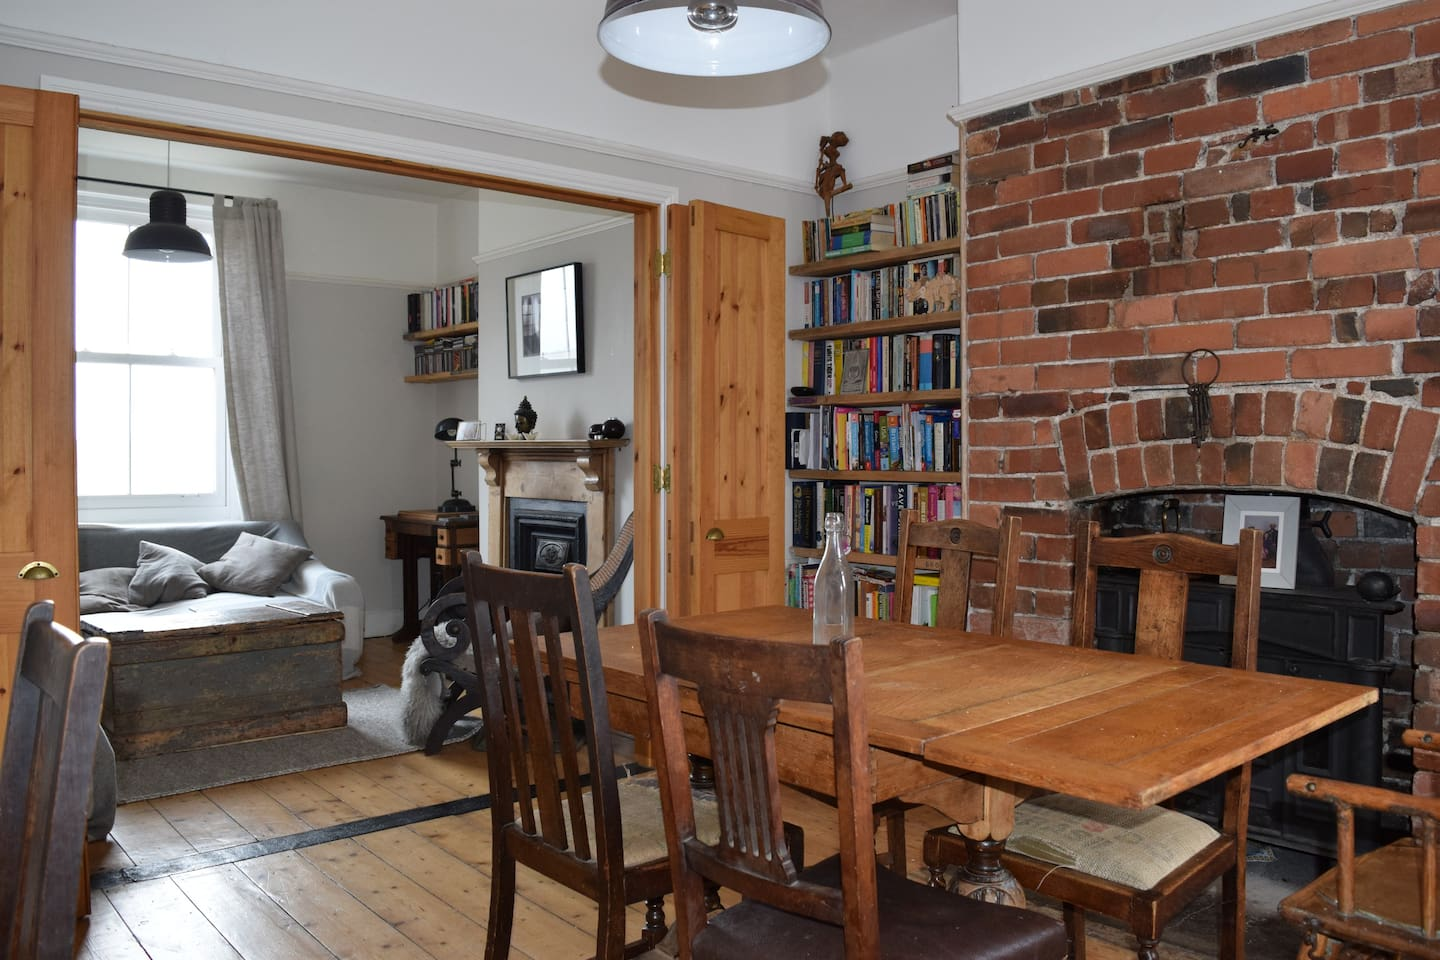 Dining room leading to the living room. Dining room has wood burner